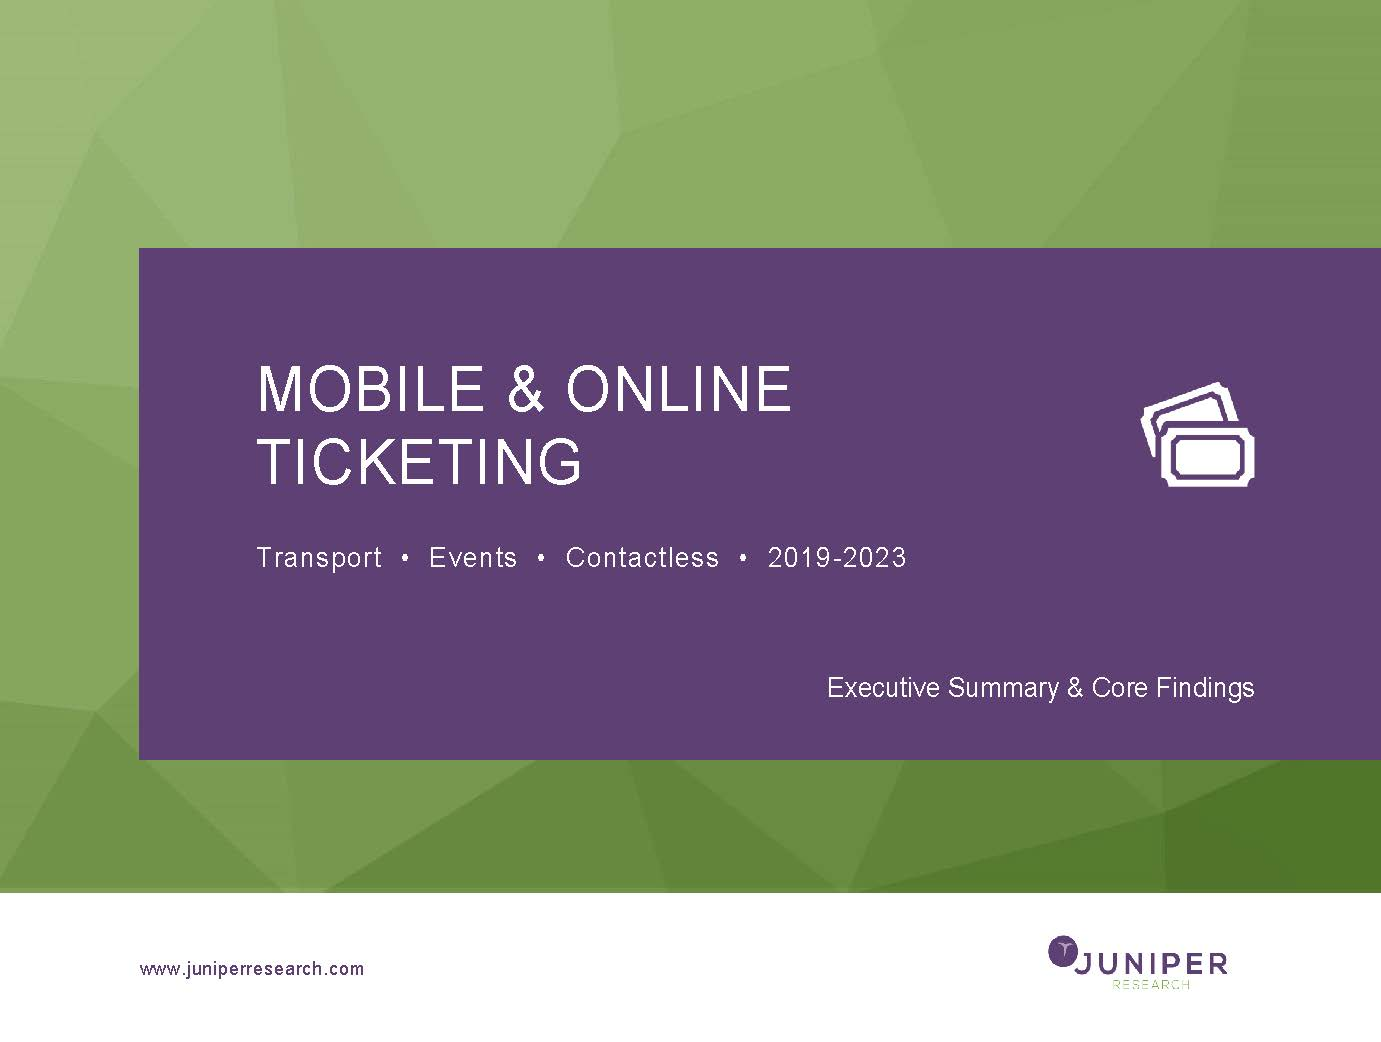 Mobile & Online Ticketing: Executive Summary 2019-2023